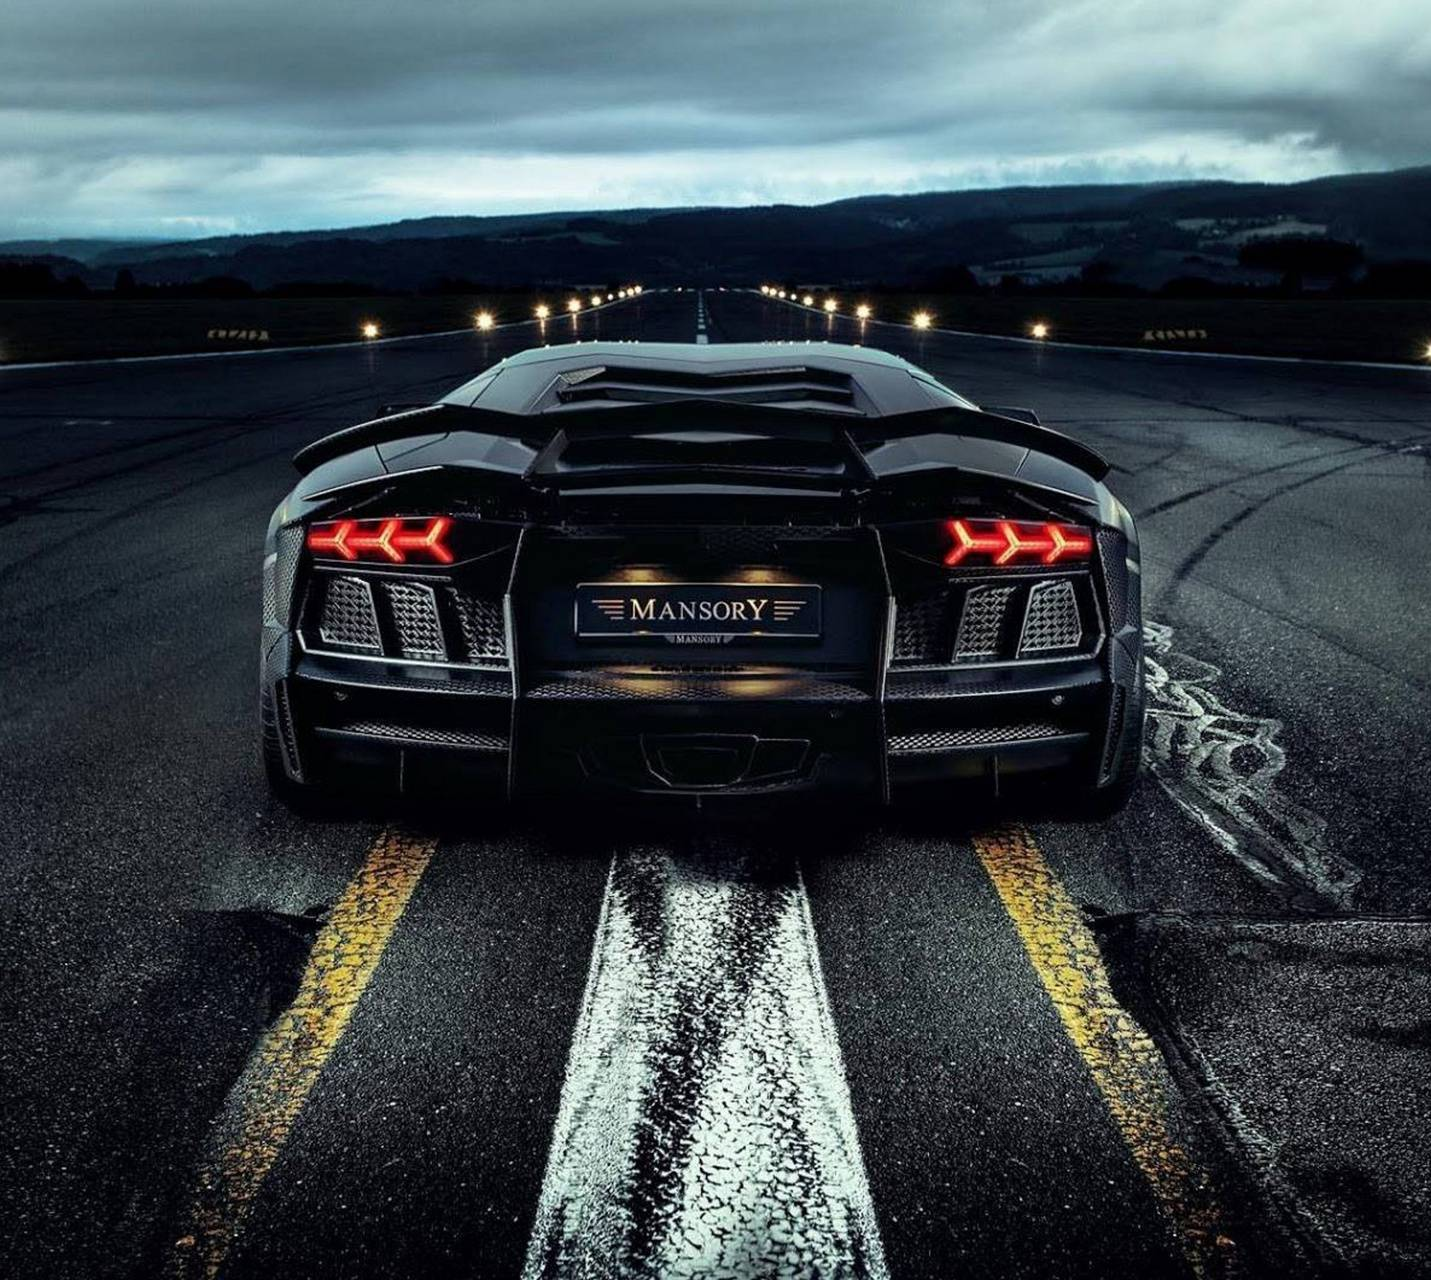 Mansory Wallpapers Top Free Mansory Backgrounds Wallpaperaccess